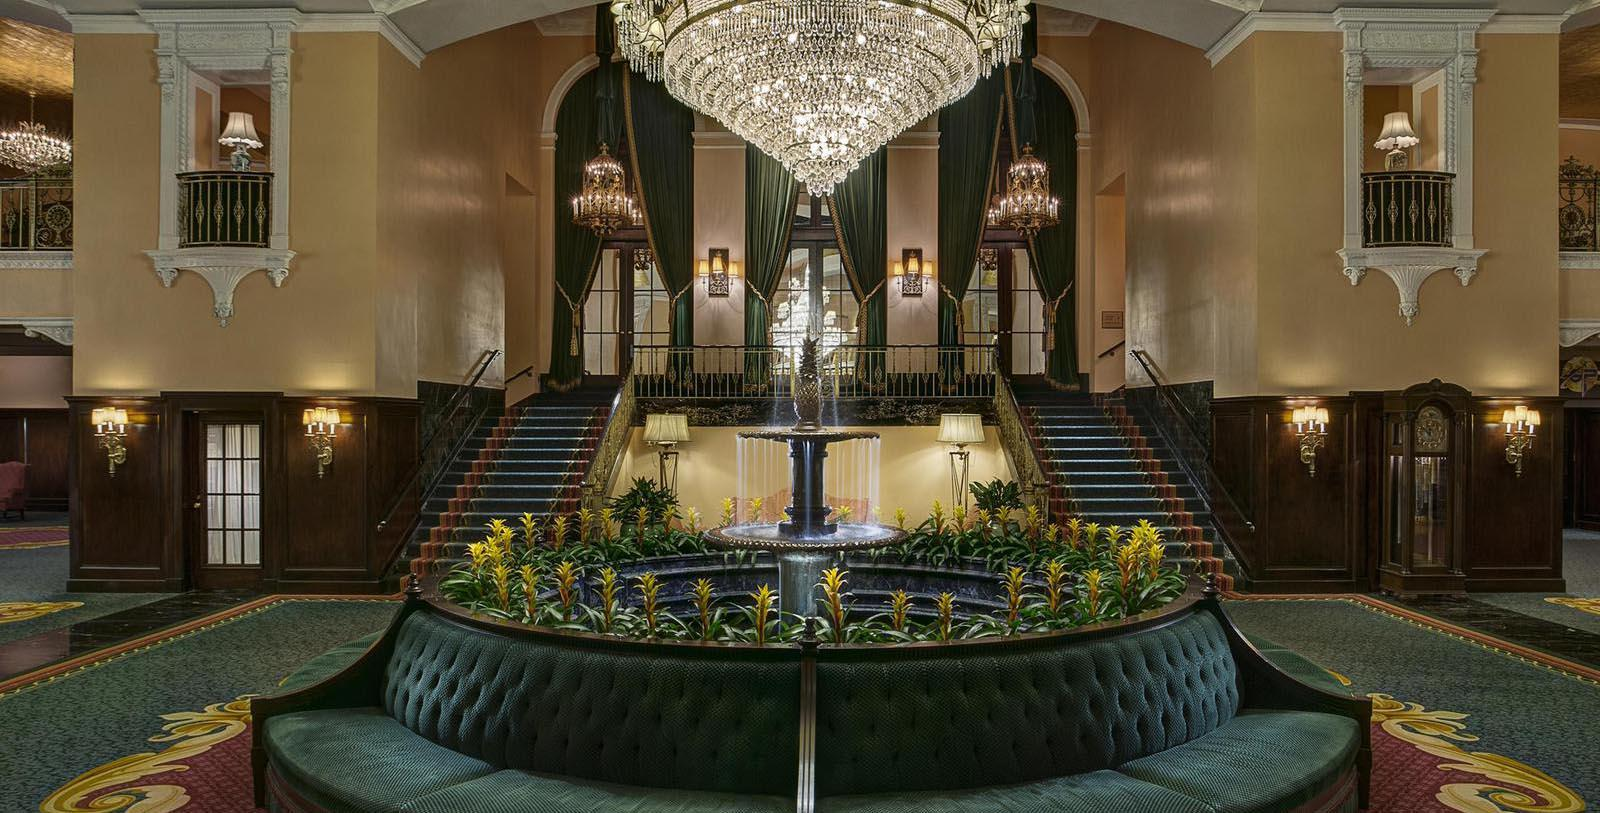 Image of Lobby at Amway Grand Plaza Hotel, 1913, 1913, Member of Historic Hotels of America, in Grand Rapids, Michigan, Special Offers, Discounted Rates, Families, Romantic Escape, Honeymoons, Anniversaries, Reunions